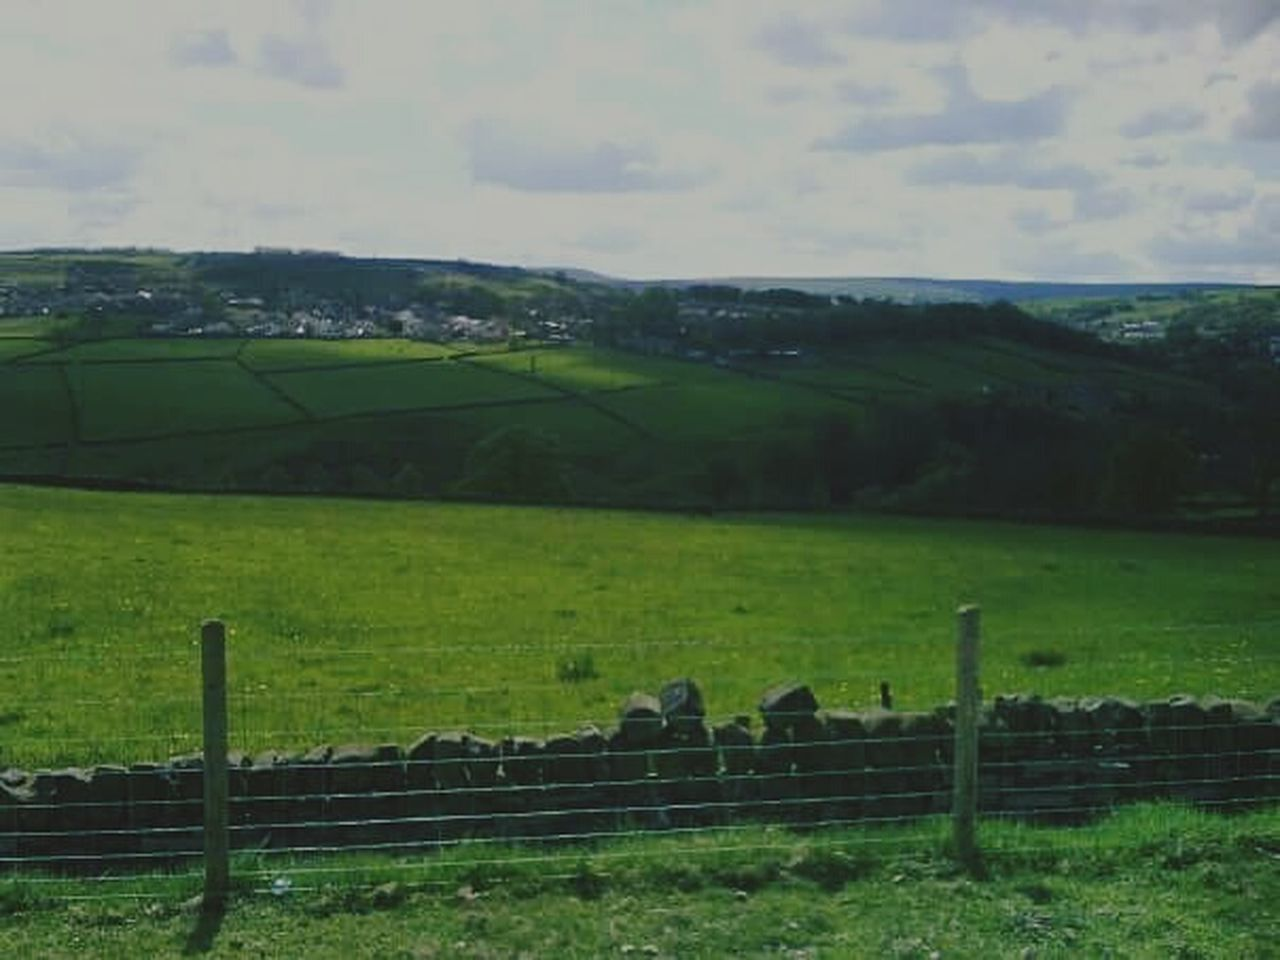 farm, agriculture, field, rural scene, landscape, livestock, domestic animals, nature, animal themes, scenics, sky, beauty in nature, cloud - sky, no people, grazing, day, tranquil scene, paddock, outdoors, sheep, grass, mammal, farmhouse